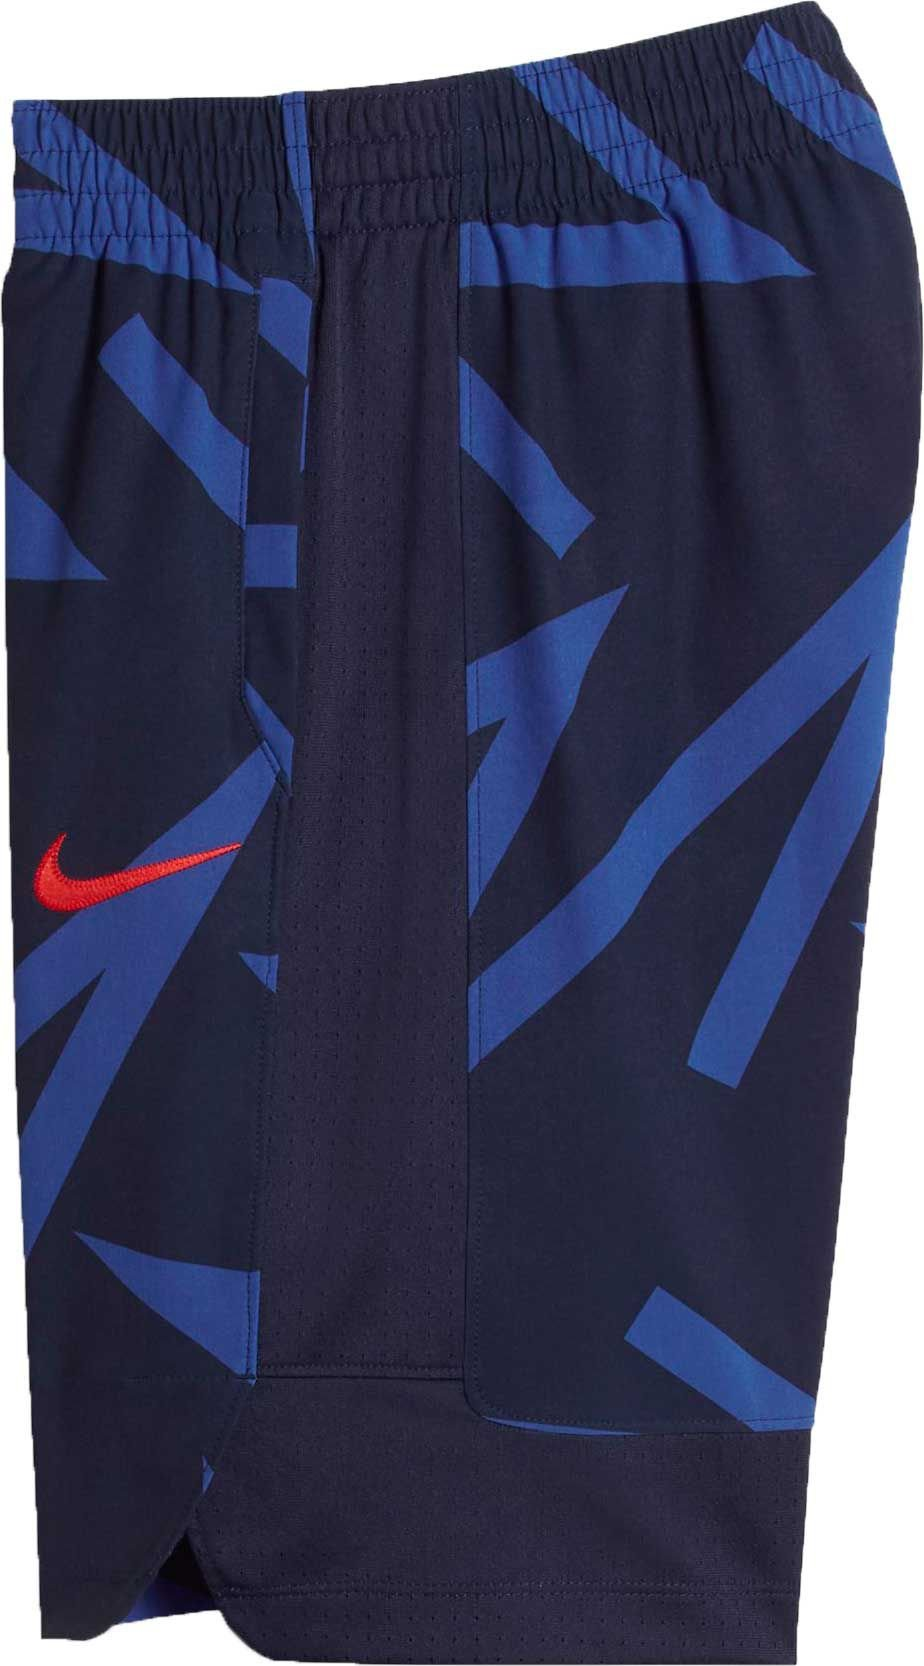 NIKE Boys' Flex Kyrie Hyper Elite Basketball Shorts (Game Royal (844318-480) / Midnight Navy/Max, Small)